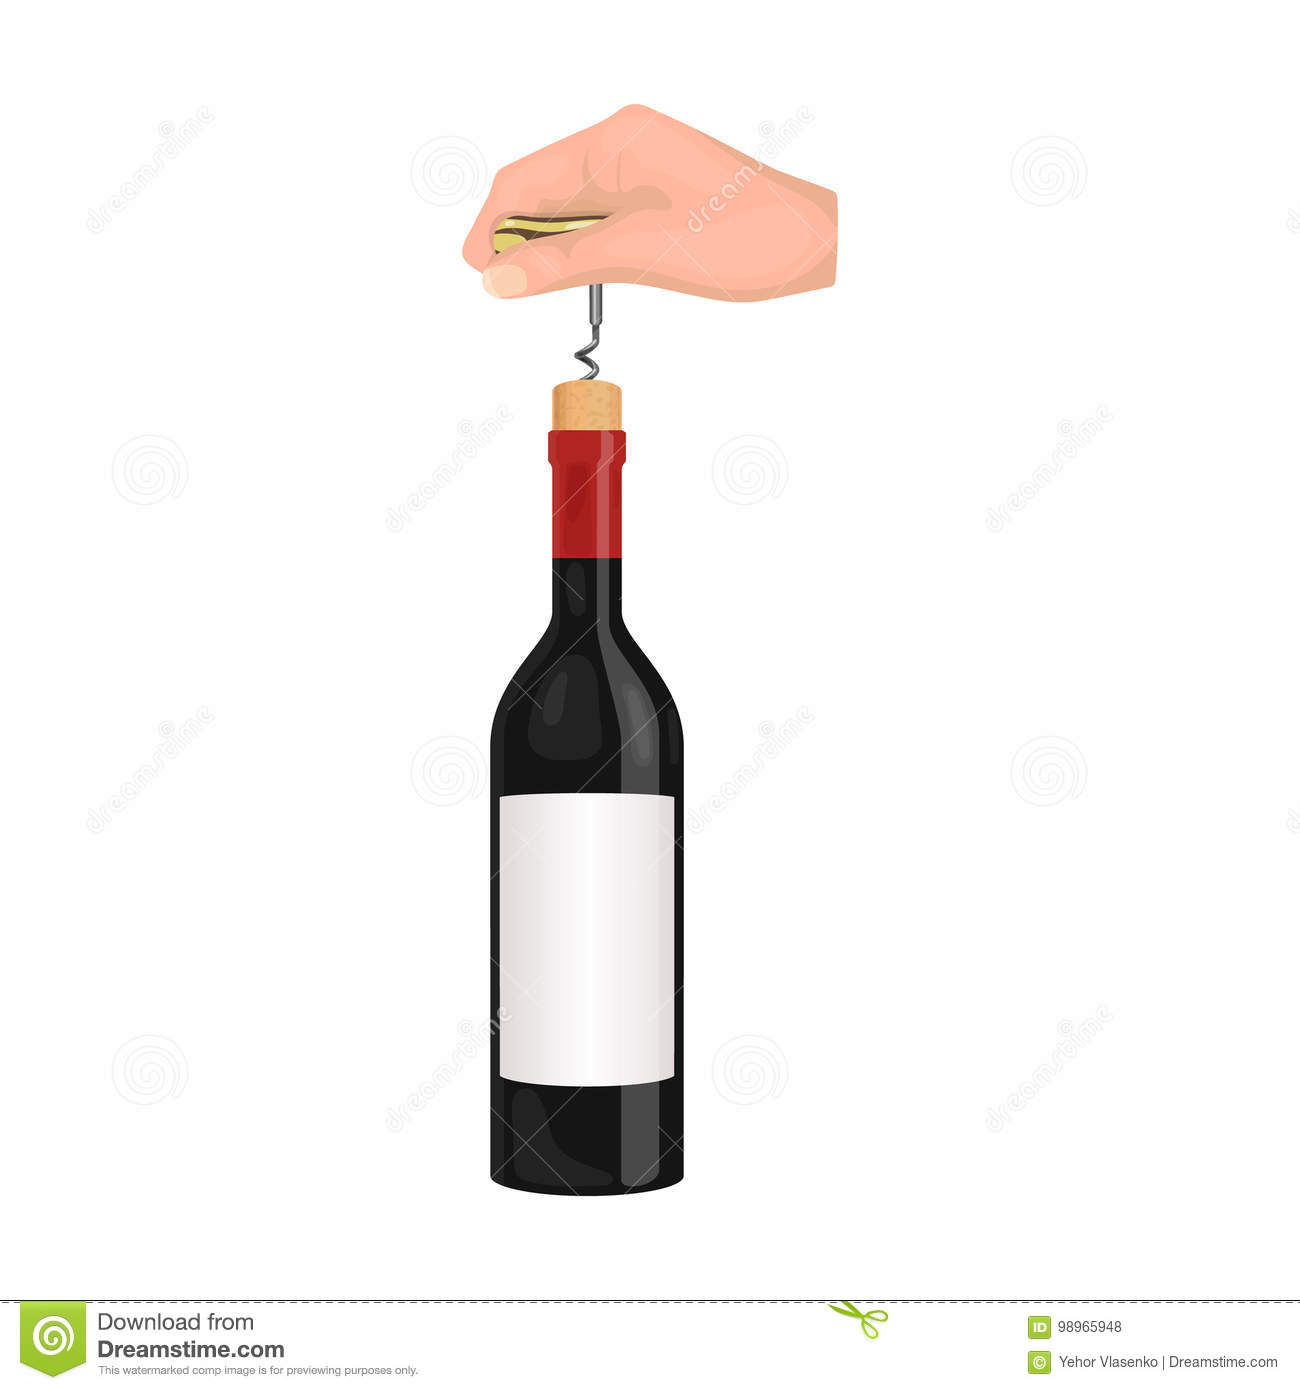 Opening the bottle with a corkscrew. Manipulation with a corkscrew single icon in cartoon style vector symbol stock